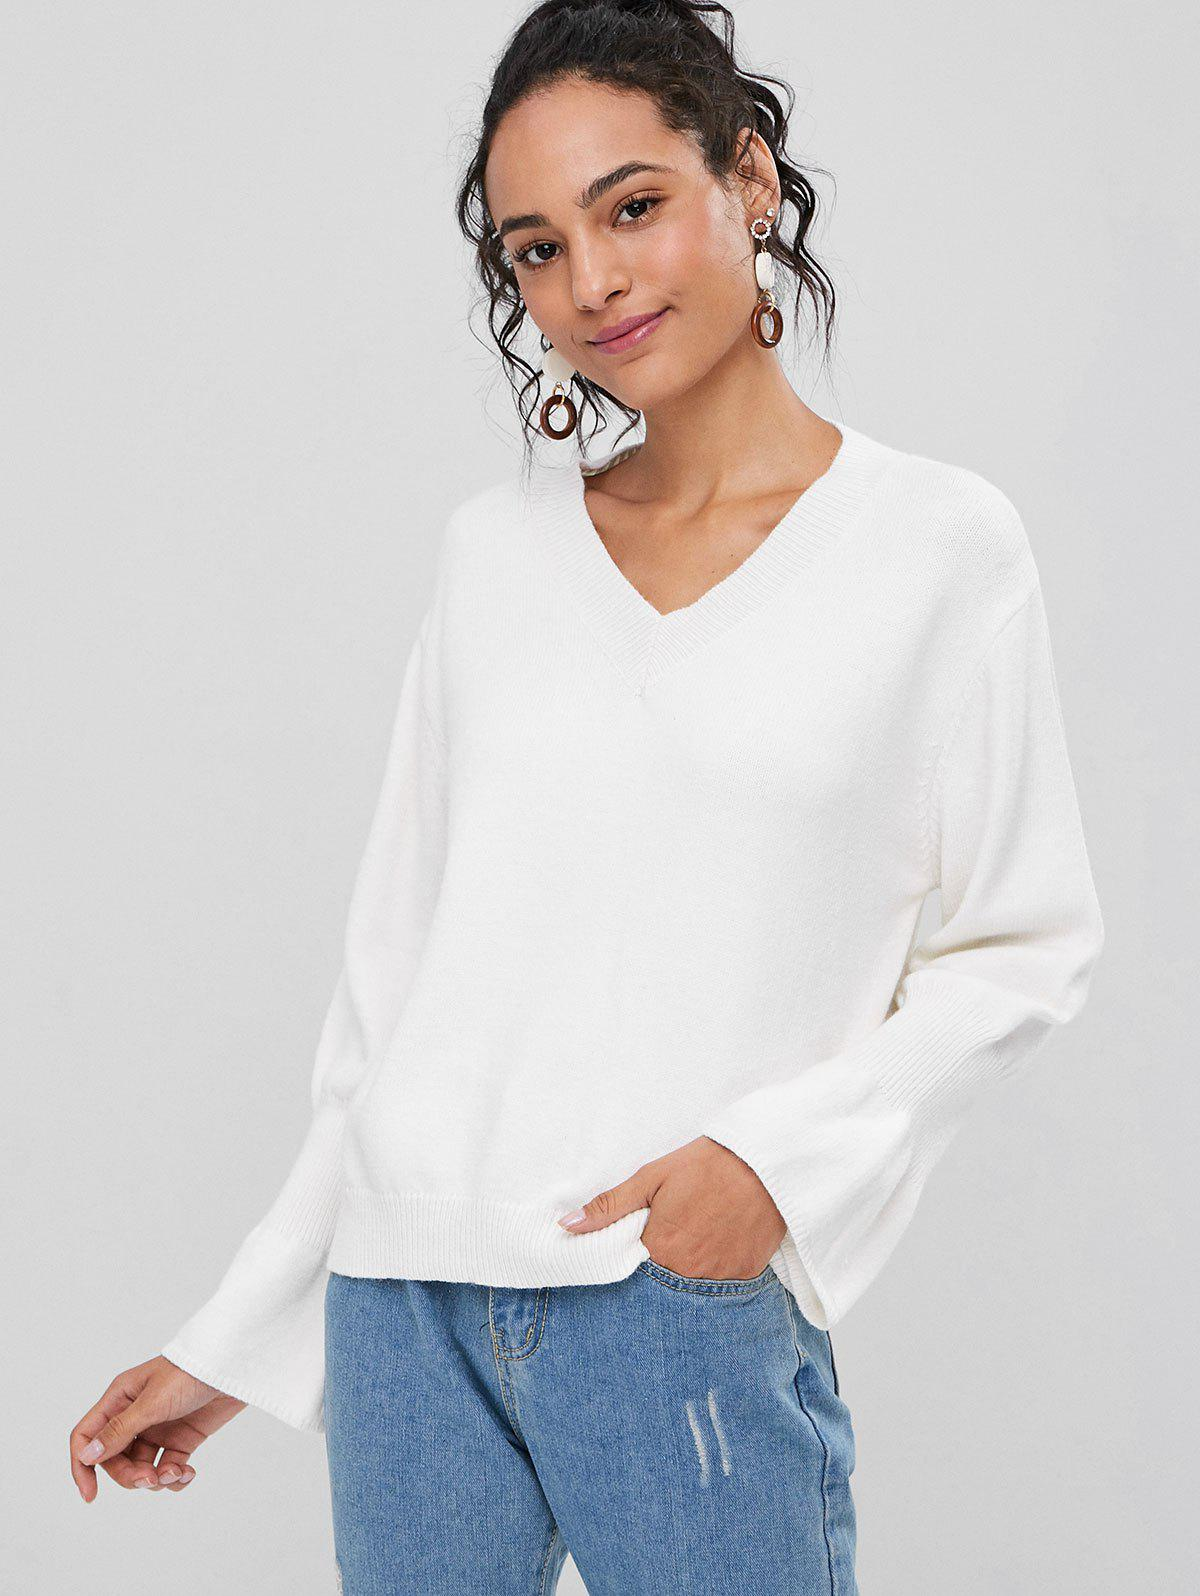 Ruffled Sleeve V Neck Sweater